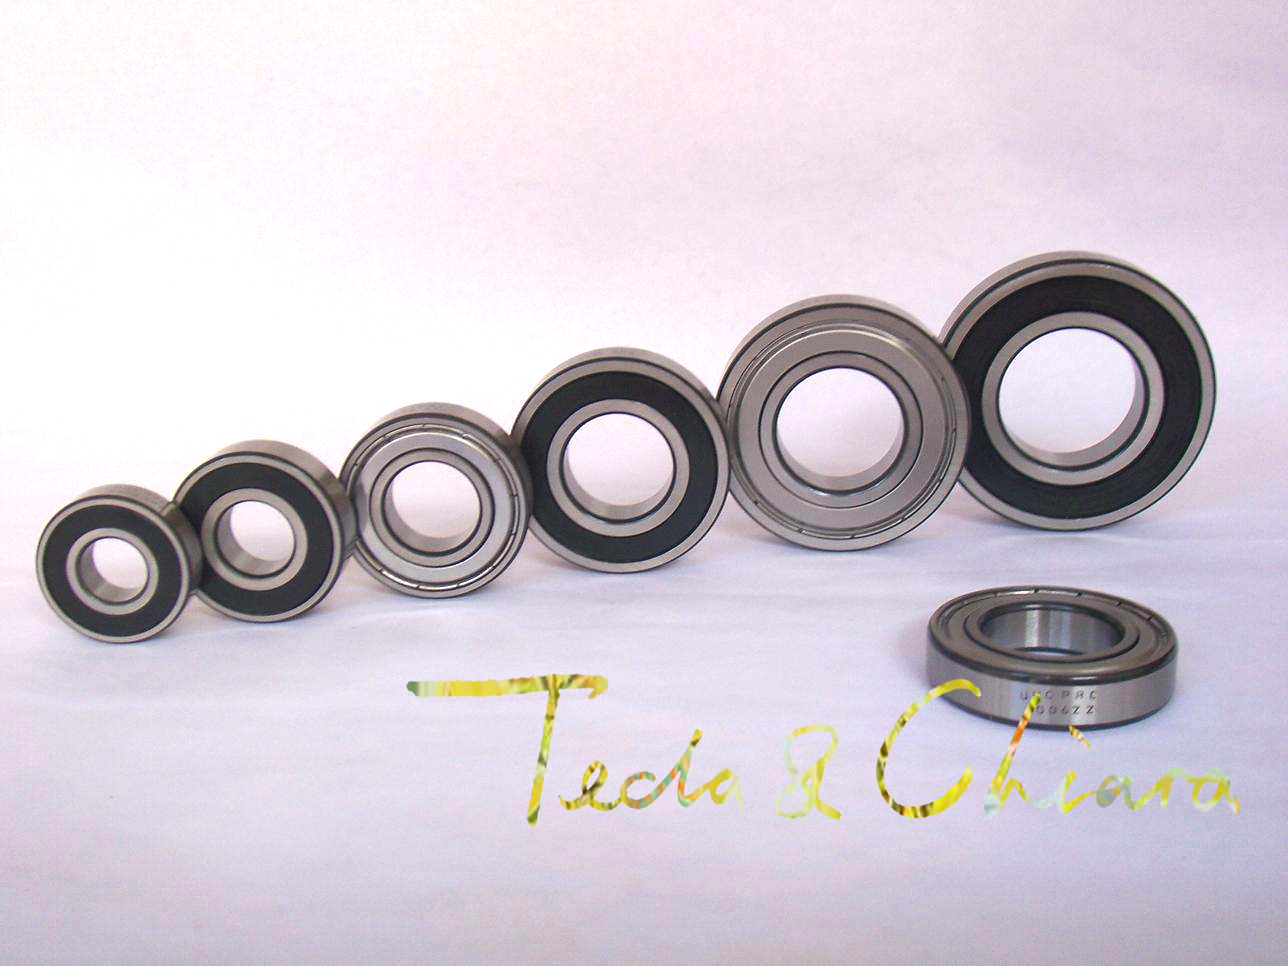 627 627ZZ 627RS 627-2Z 627Z 627-2RS ZZ RS RZ 2RZ Deep Groove Ball Bearings 7 x 22 x 7mm High Quality free shipping 25x47x12mm deep groove ball bearings 6005 zz 2z 6005zz bearing 6005zz 6005 2rs